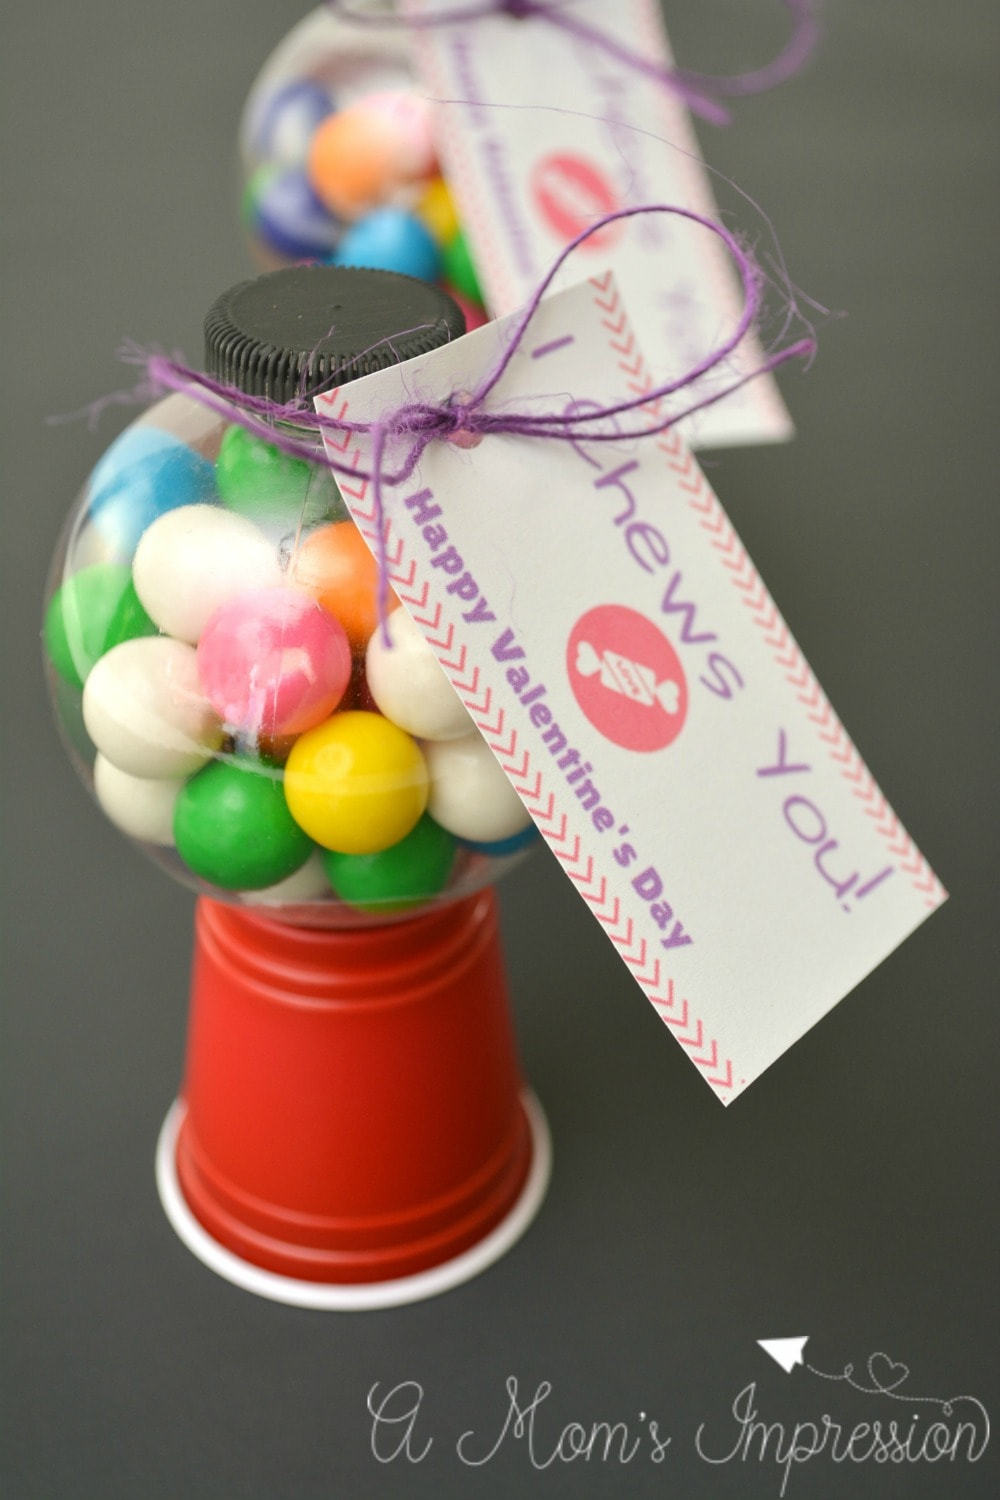 Valentine S Day Classroom Ideas ~ Homemade valentine gift ideas for kids diy mini gumball